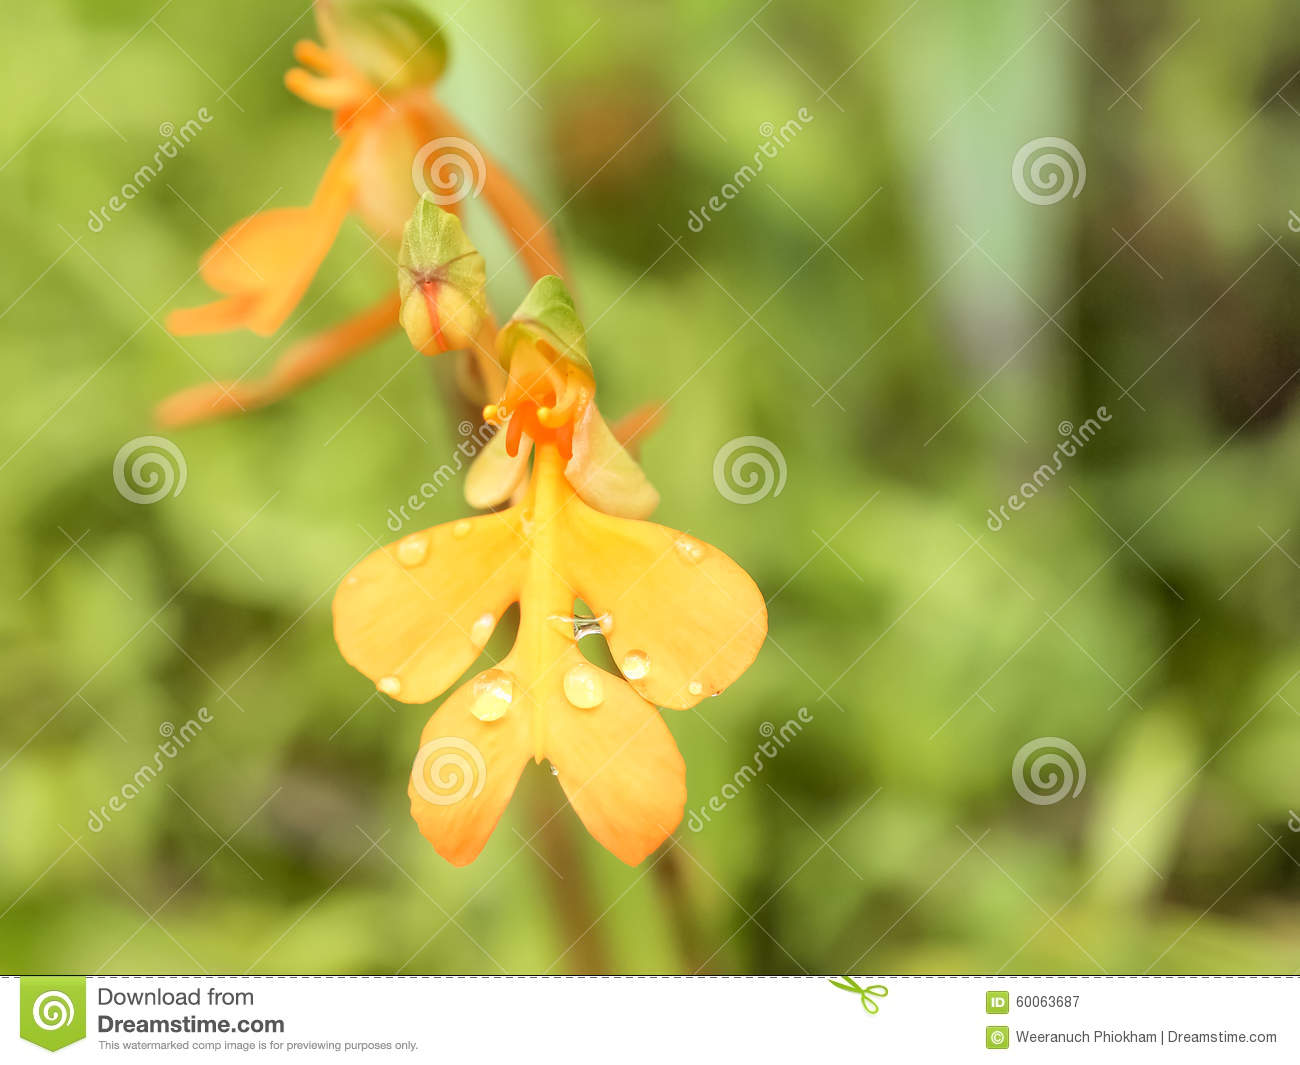 Snapdragon Flowers Stock Image Image Of Tropical Snapdragon 60063687